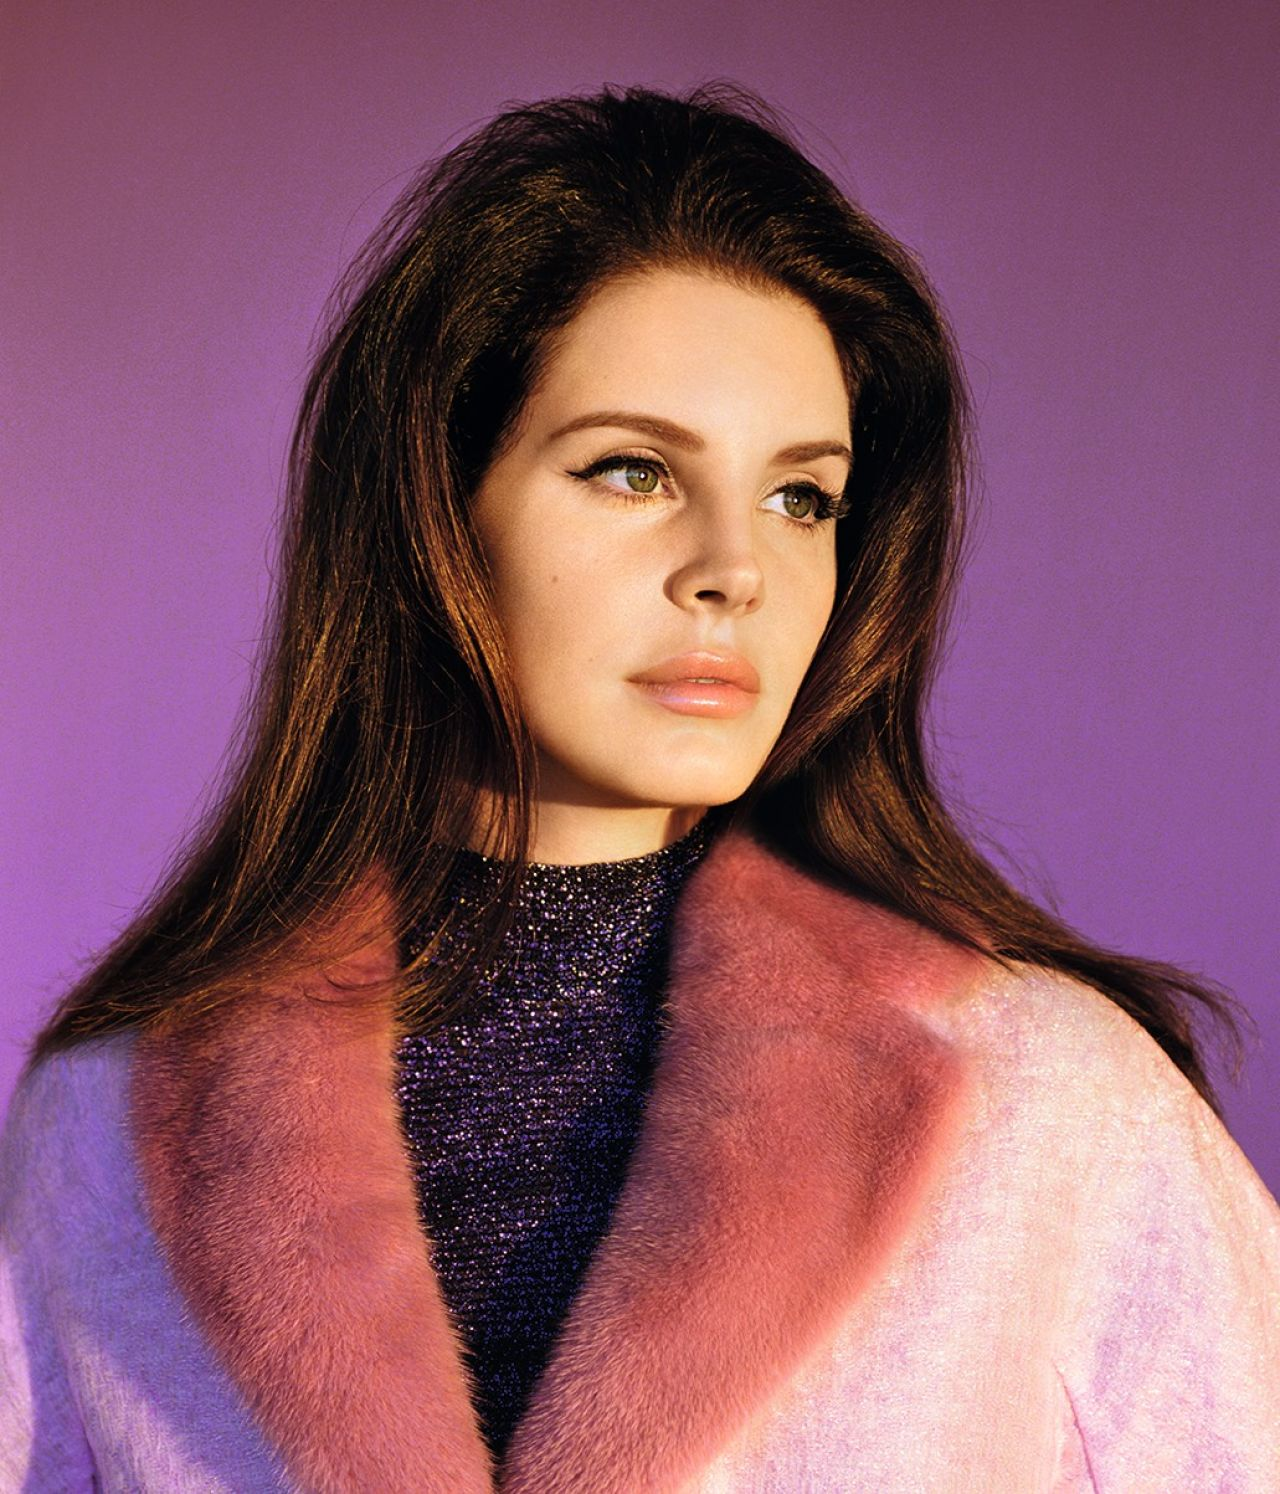 Lana Del Rey - Photoshoot for AnOthet Man Magazine Spring Summer 2015